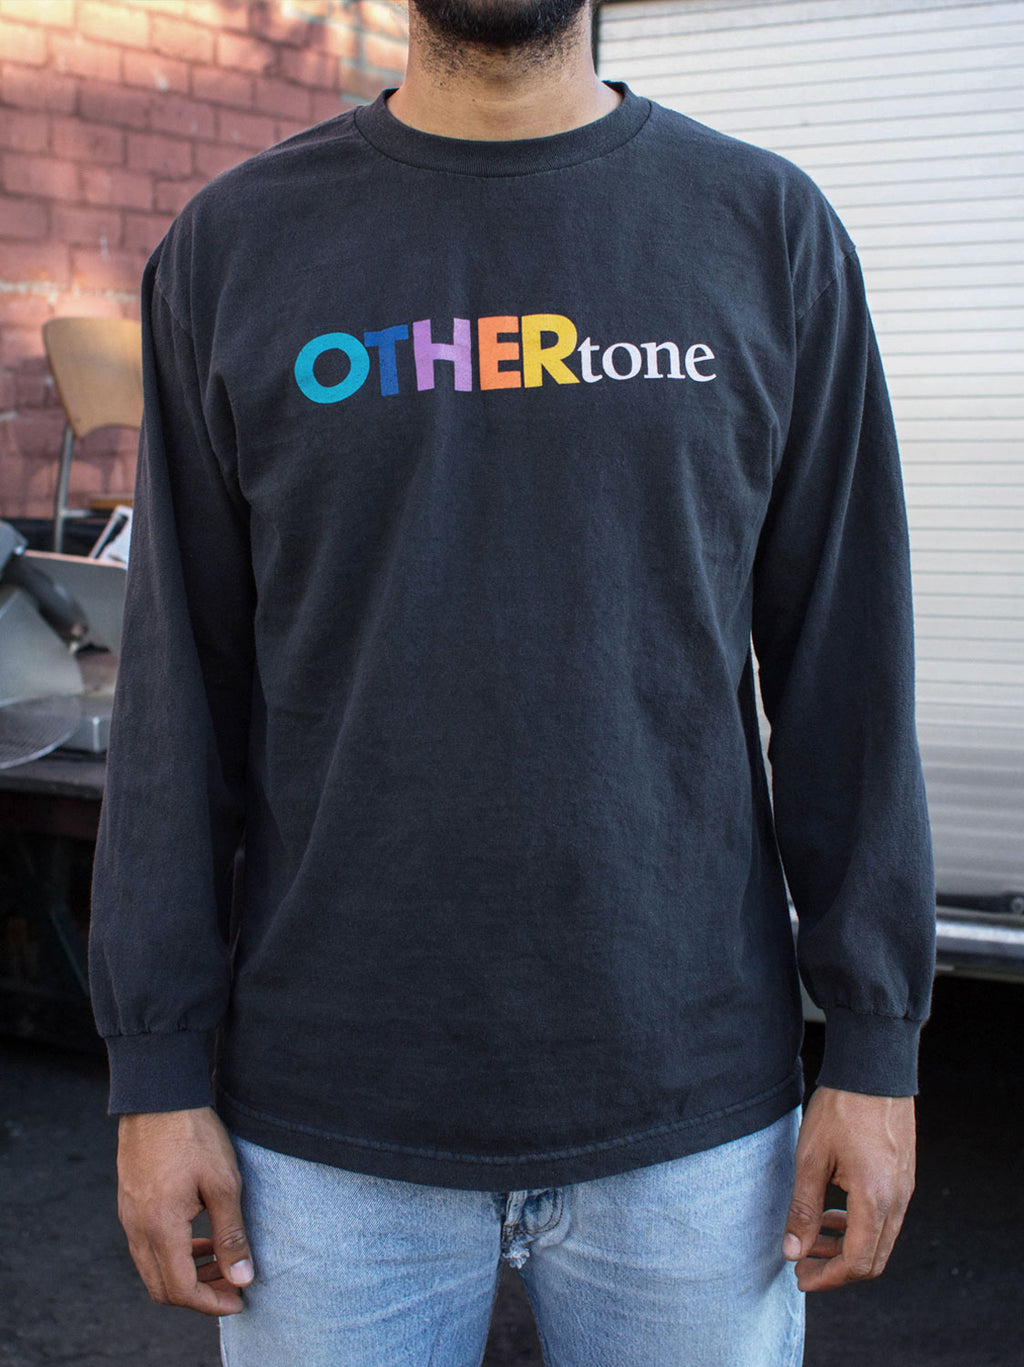 OTHERtone Long Sleeve